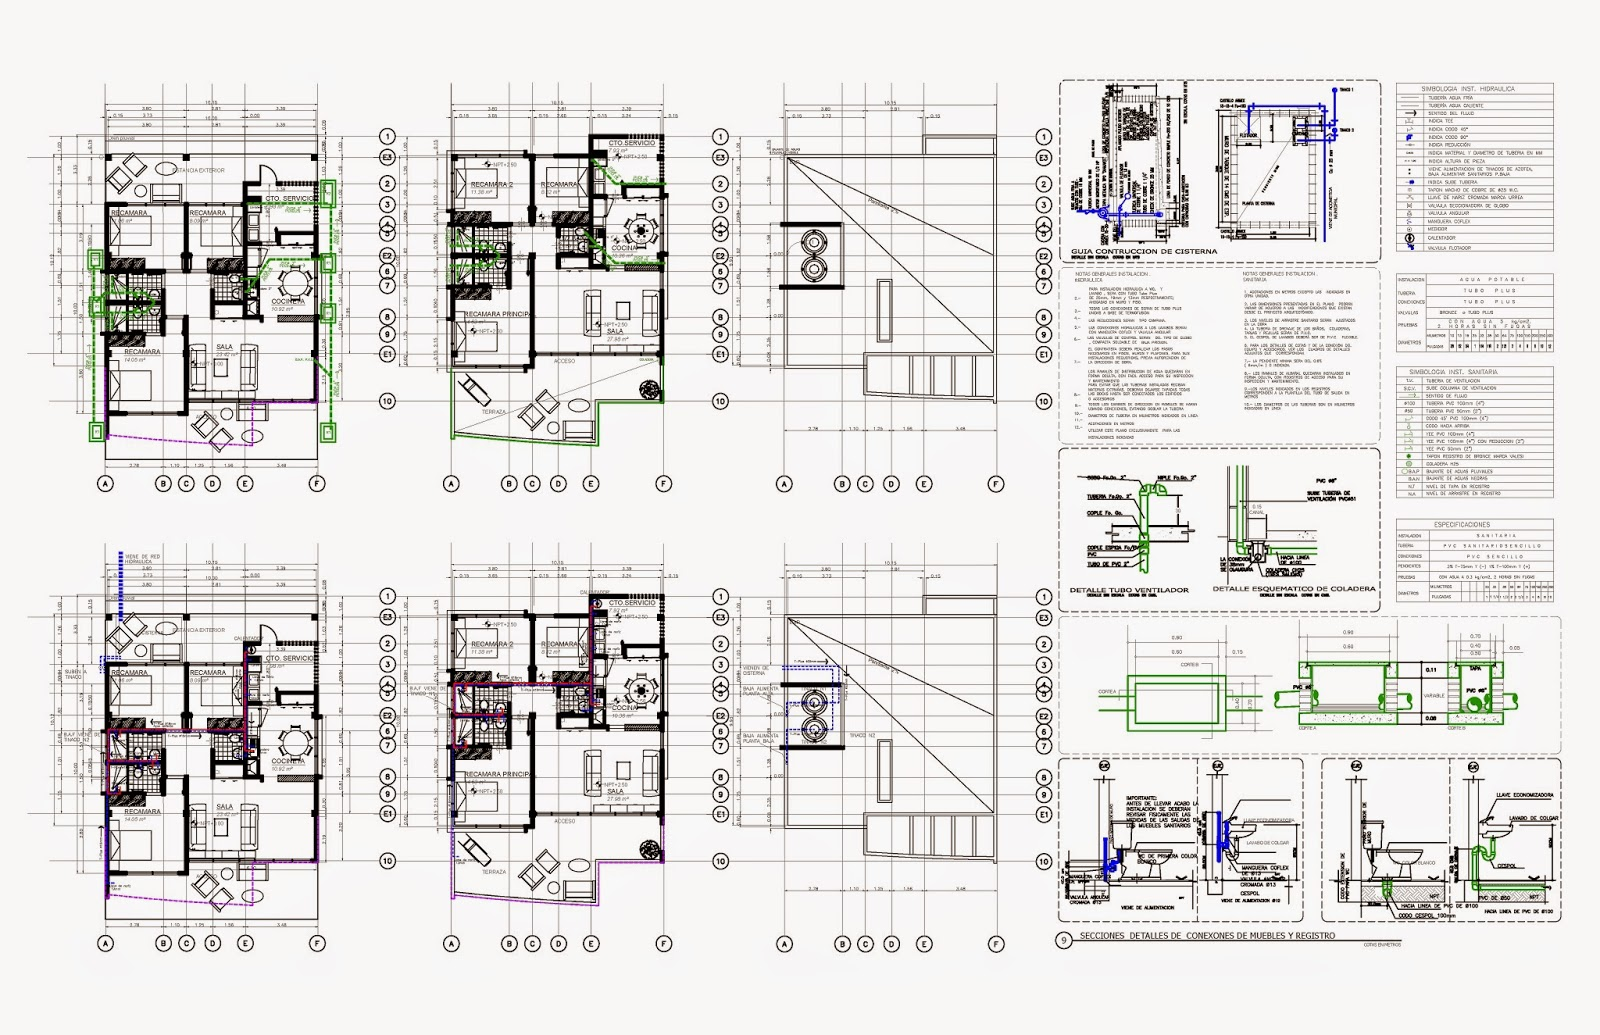 Proyecto ejecutivo cubik arquitectura carlos tapia for Proyecto arquitectonico pdf